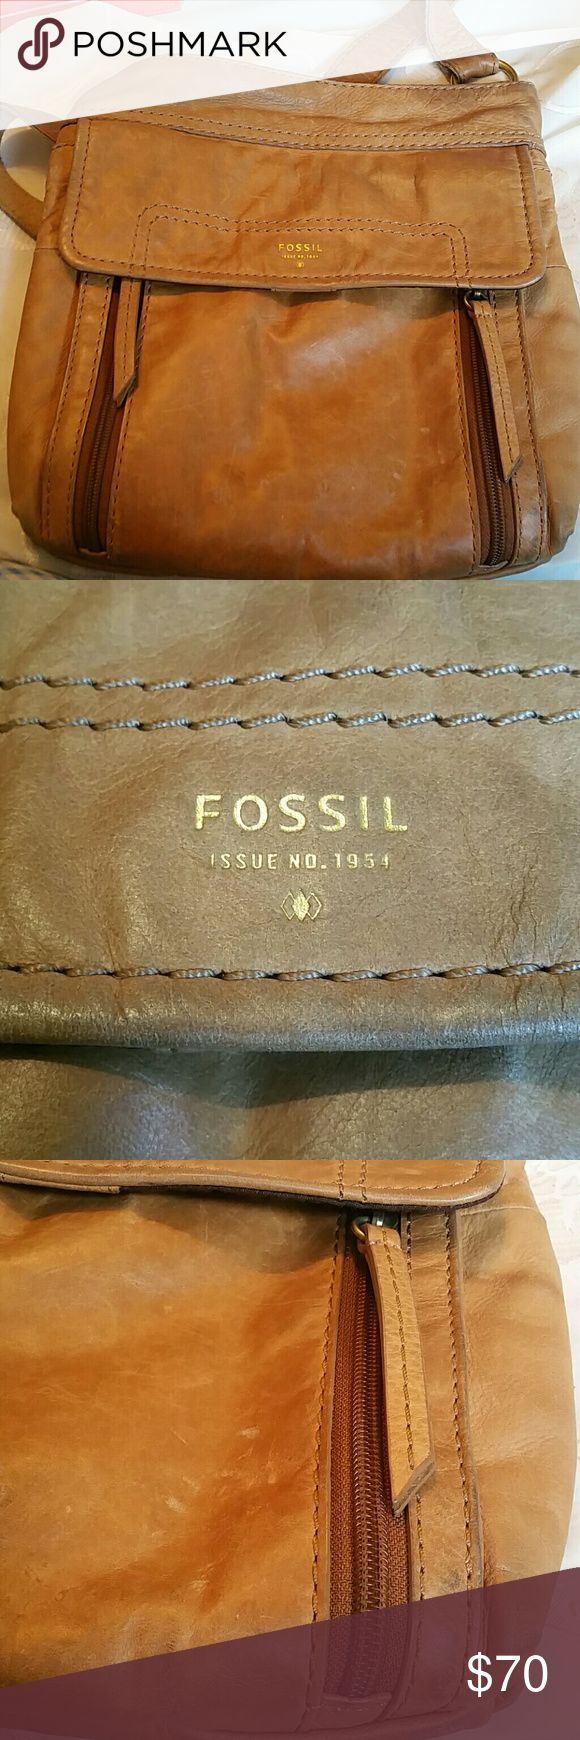 Fossil leather Crossbody This baby has 8 pockets. About 12 inches high, 10 inches wide. Purchased at Navy Exchange Virginia Beach. This is a sentimental item. My sister picked it out. I only used it for 2 months and it's been in storage. Inside the main body is some time of residue. And inside the outside pocket is where my niece put her gum. It needs iced and removed. There is visible wear on the strap. Despite it all this bag has lots of life left. Price reflects condition. Fossil Bags…